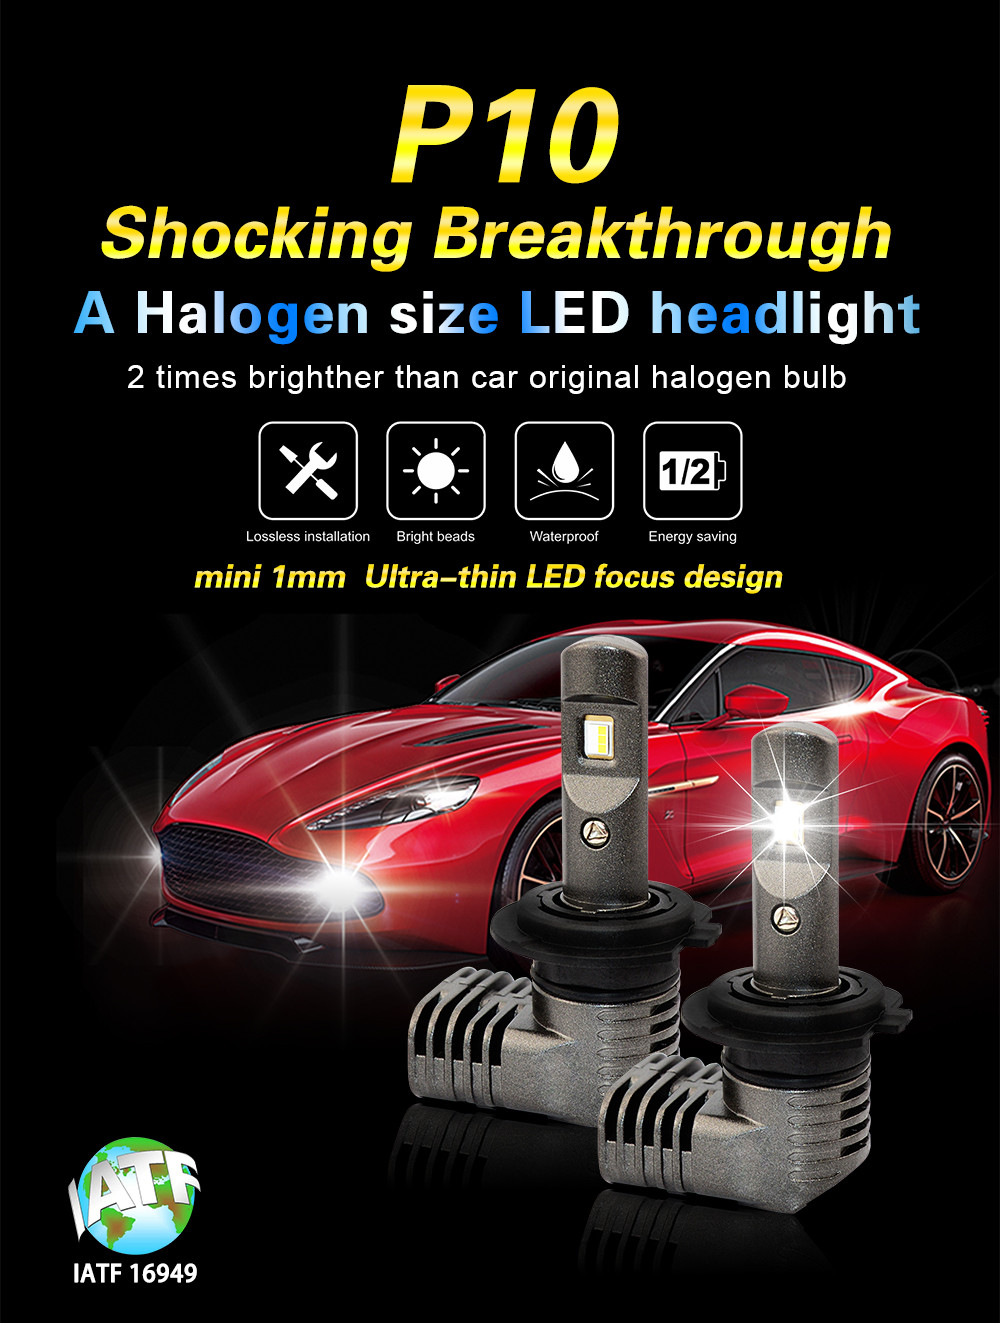 New Halogen Size LED Car Light CE FCC TS 16949 LED AUTO LAMP Best Seller Auto Lighting System